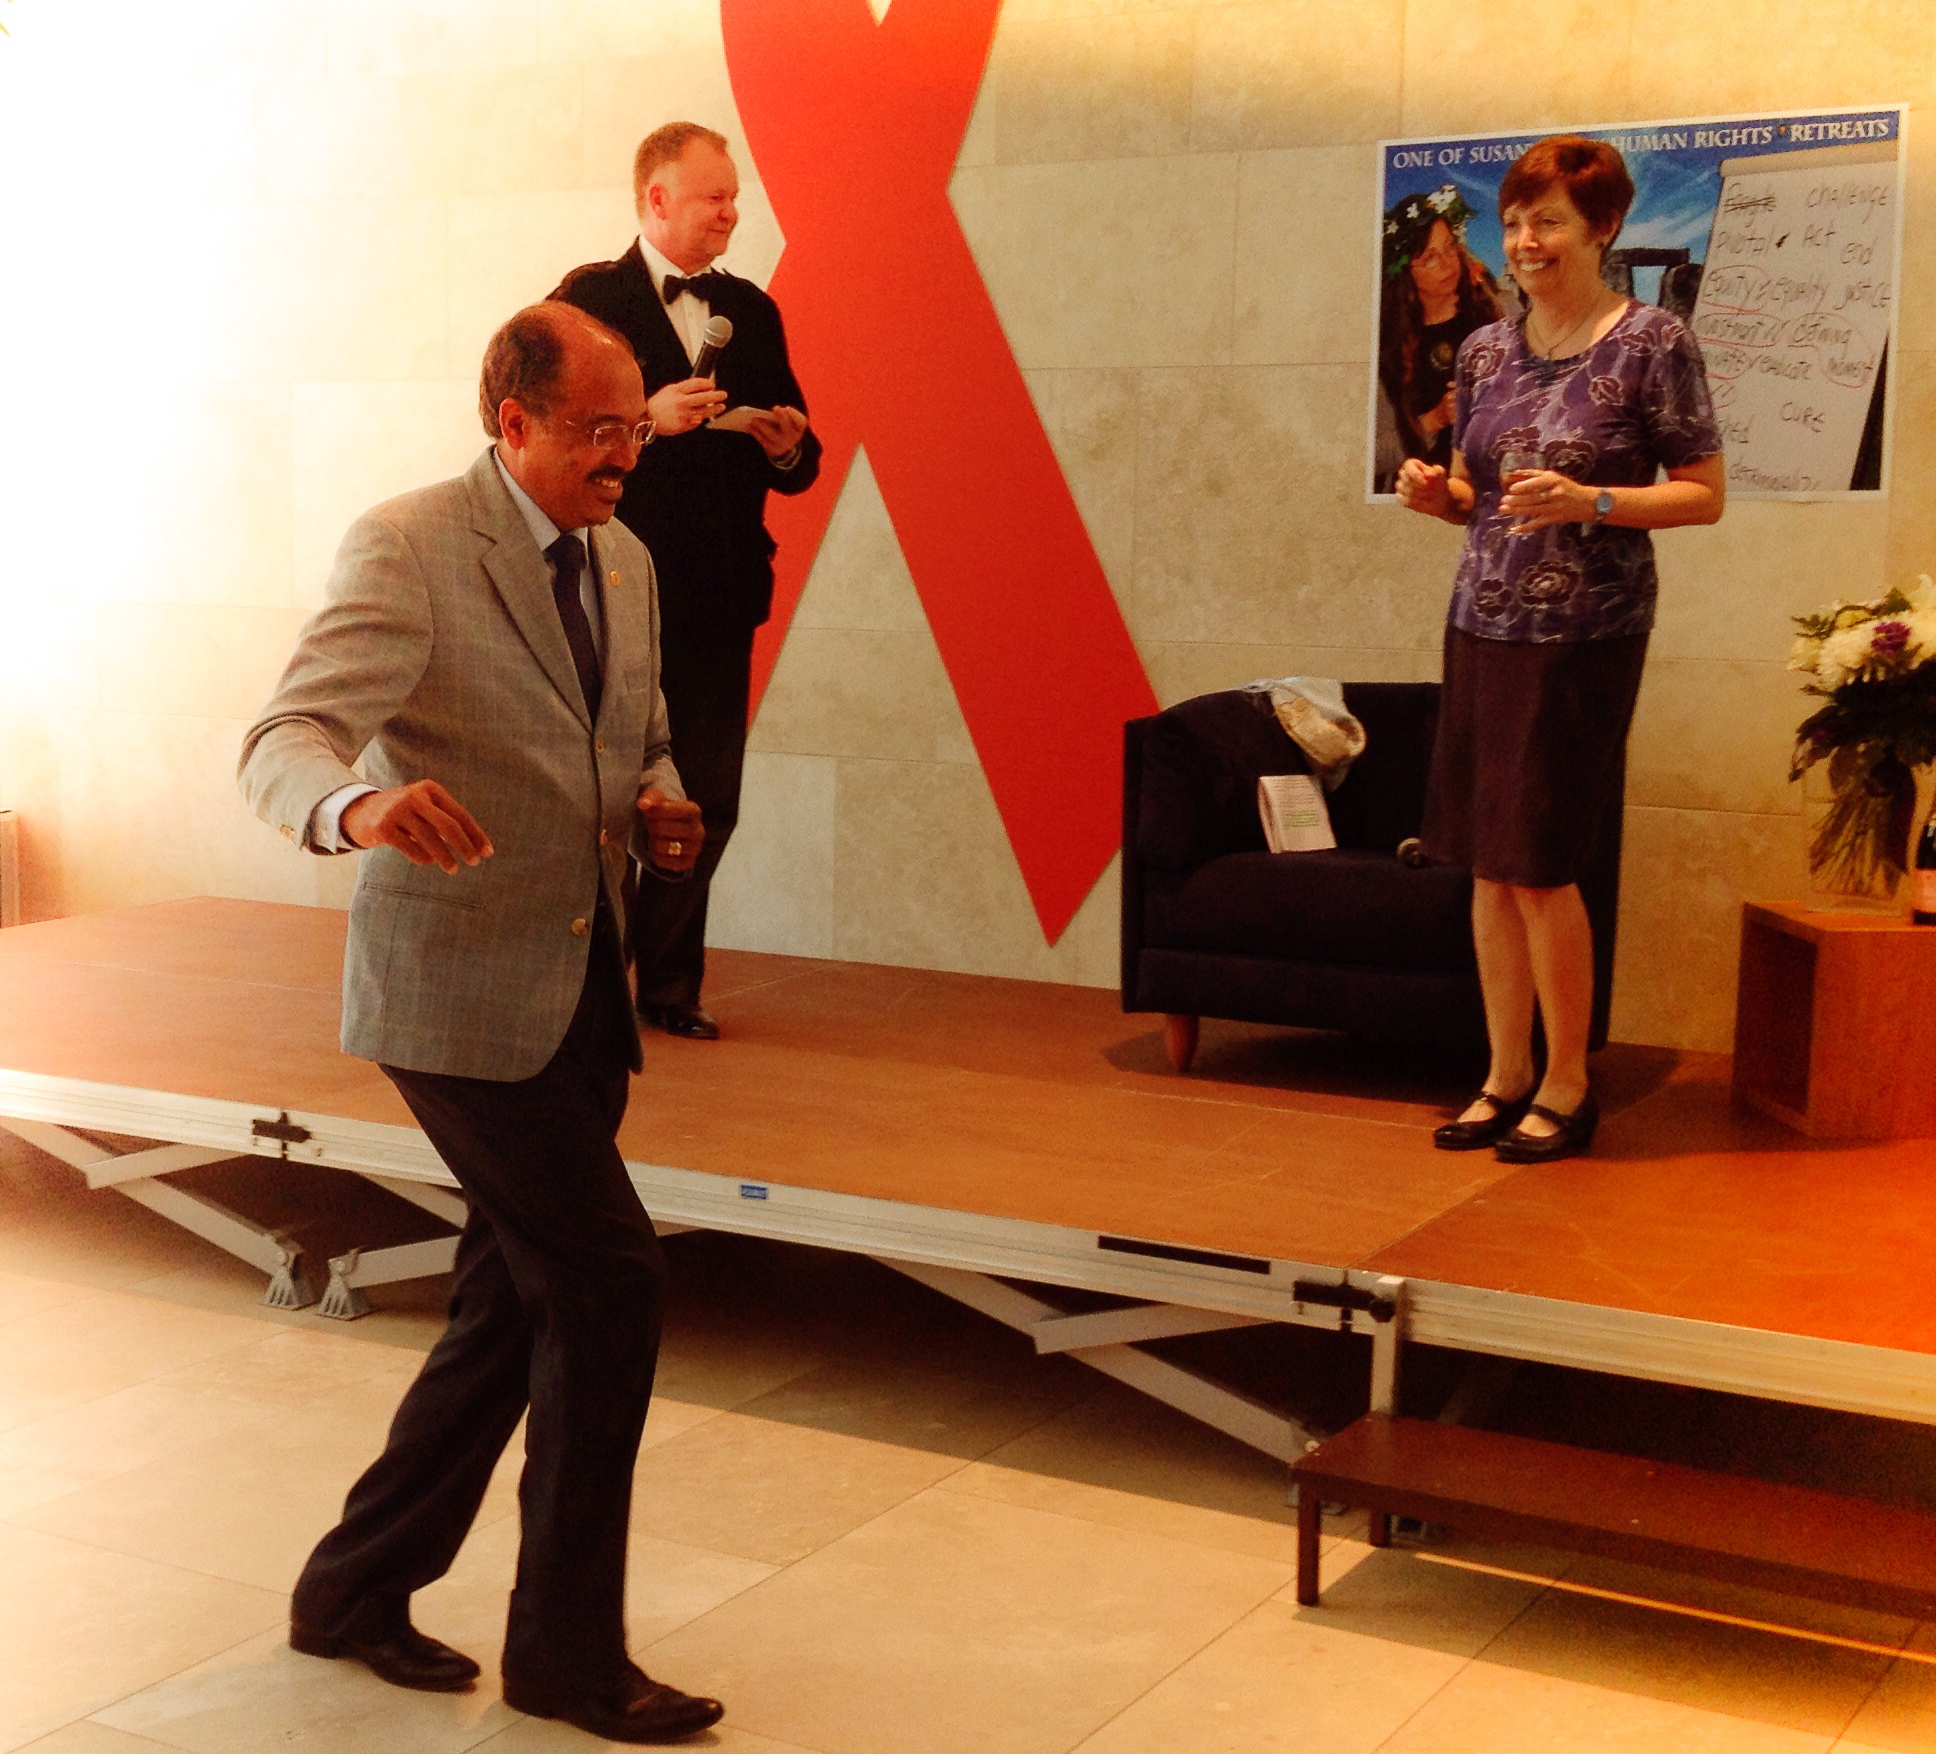 Executive Director's dance moves